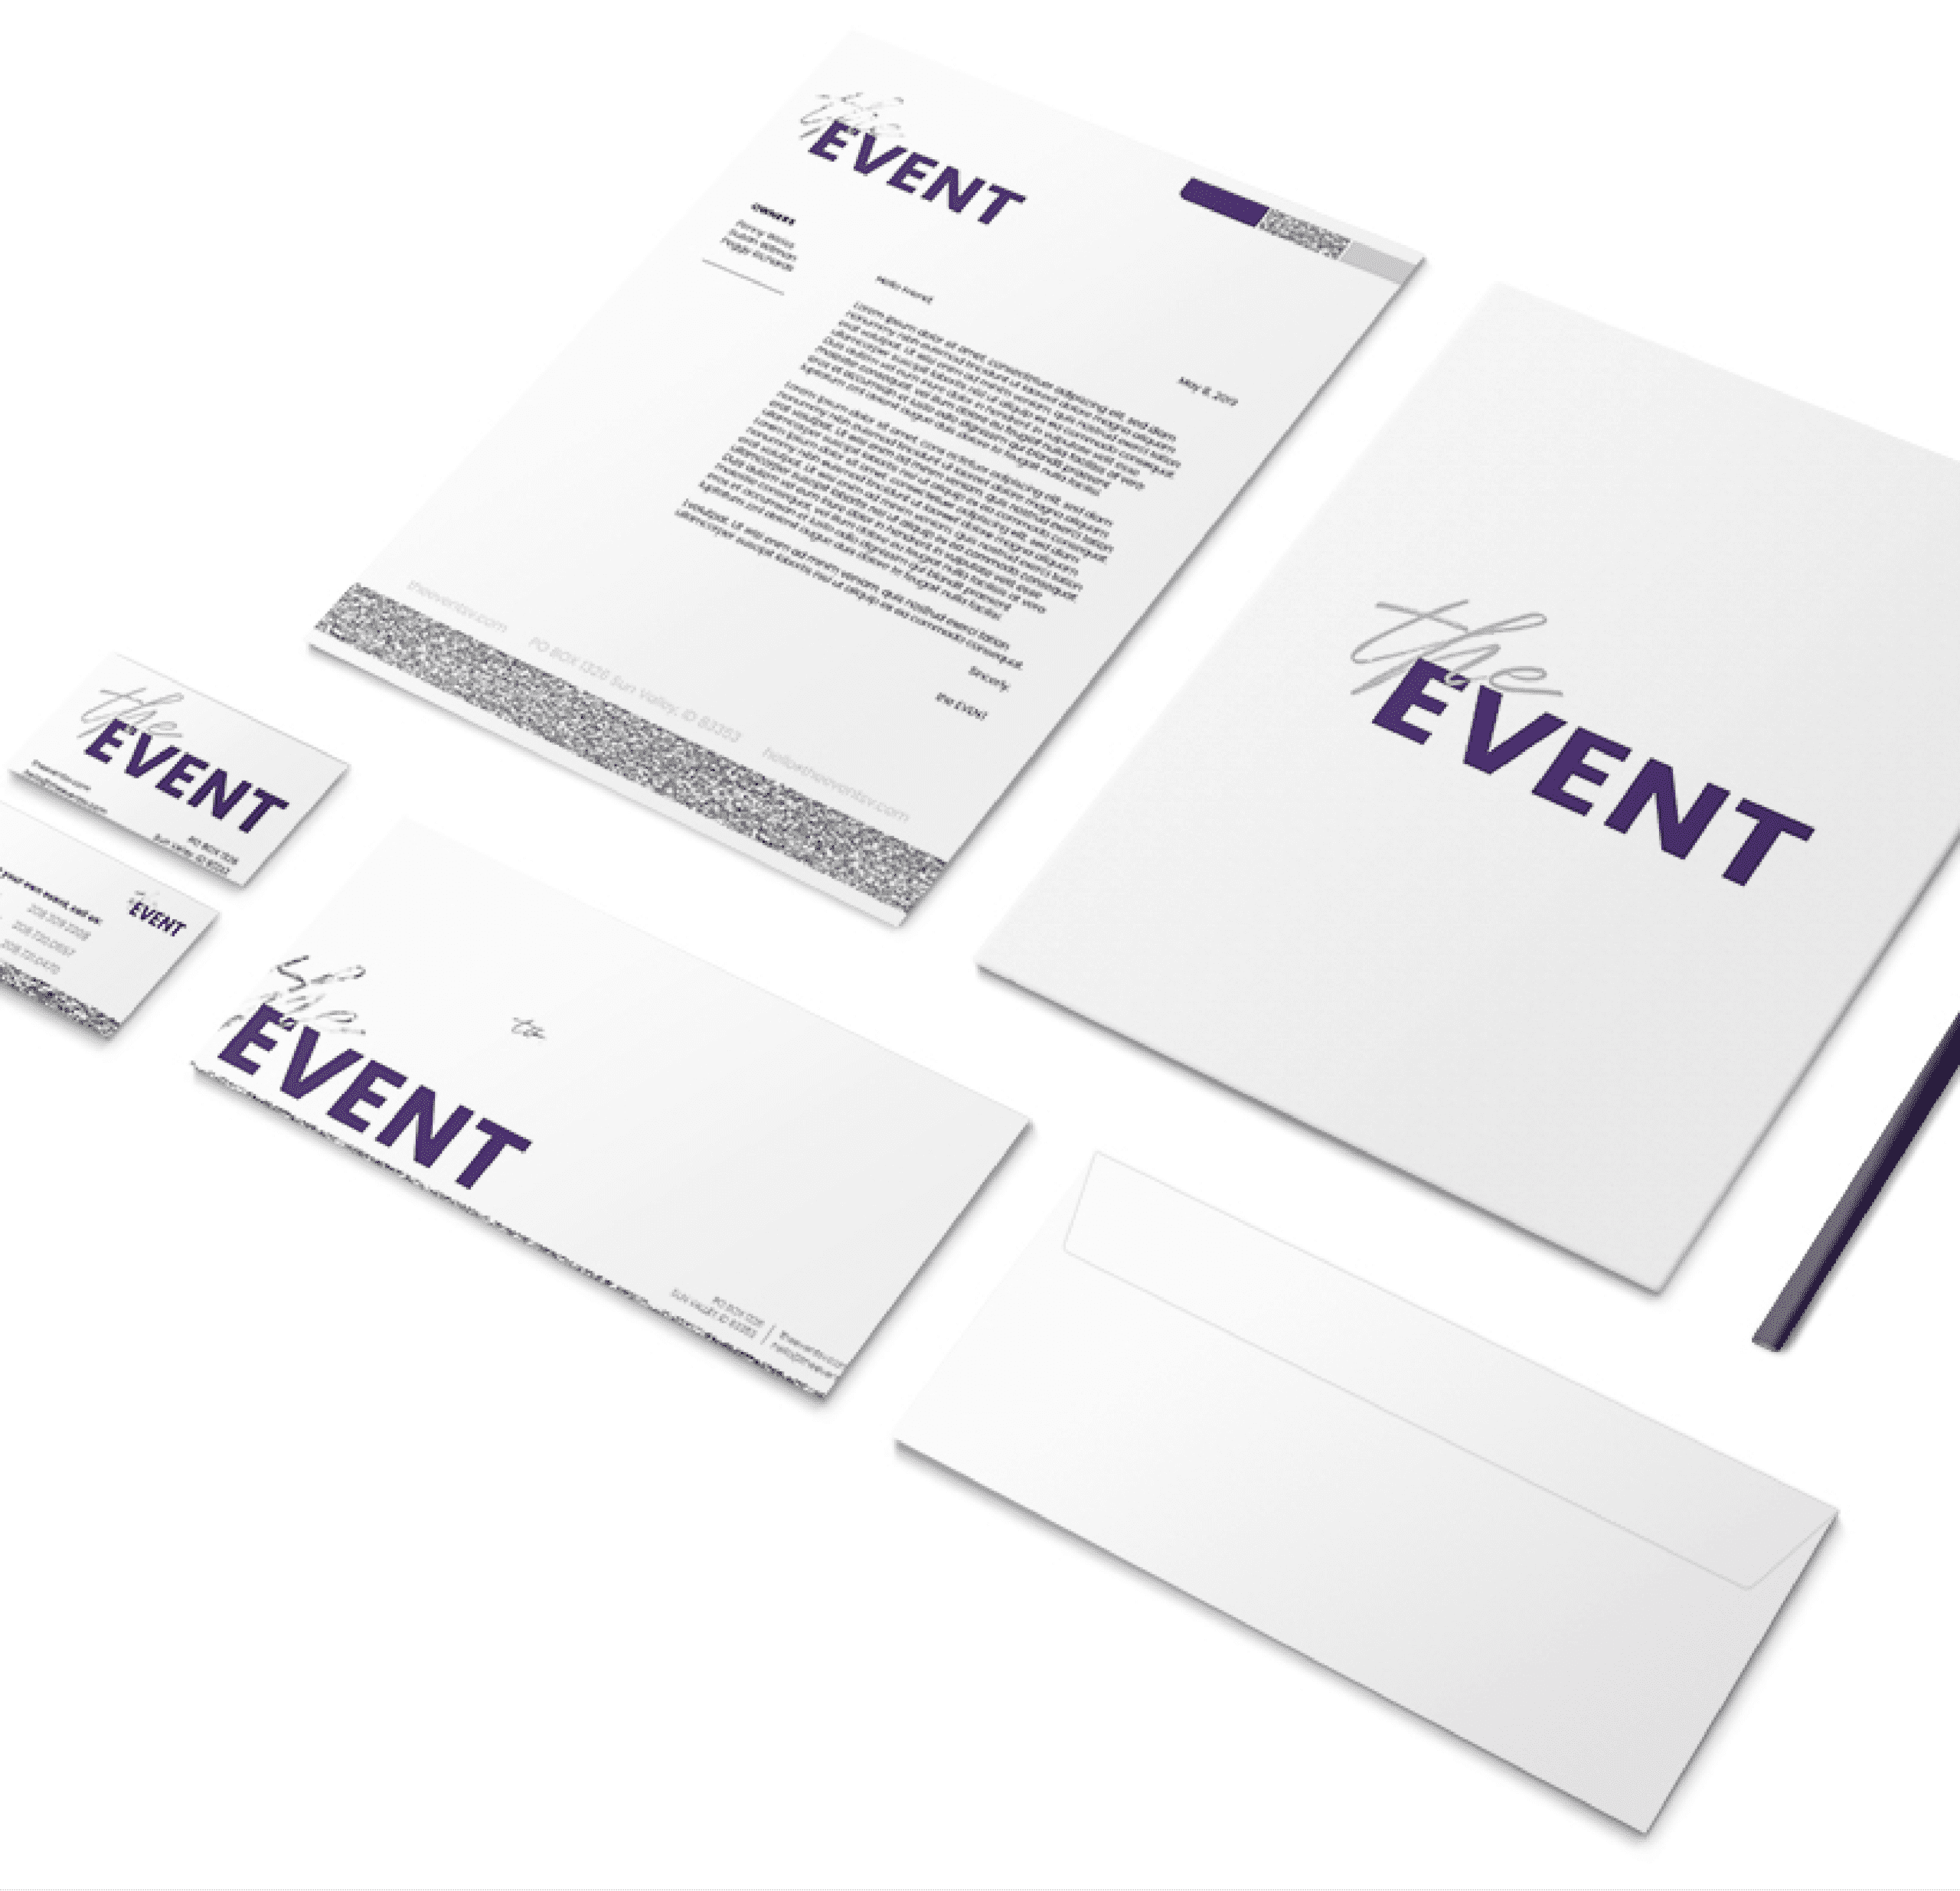 Portfolio | Stationary Design displaying the EVENT's branding on notecards, letterheads, folders business cards, and envelopes.